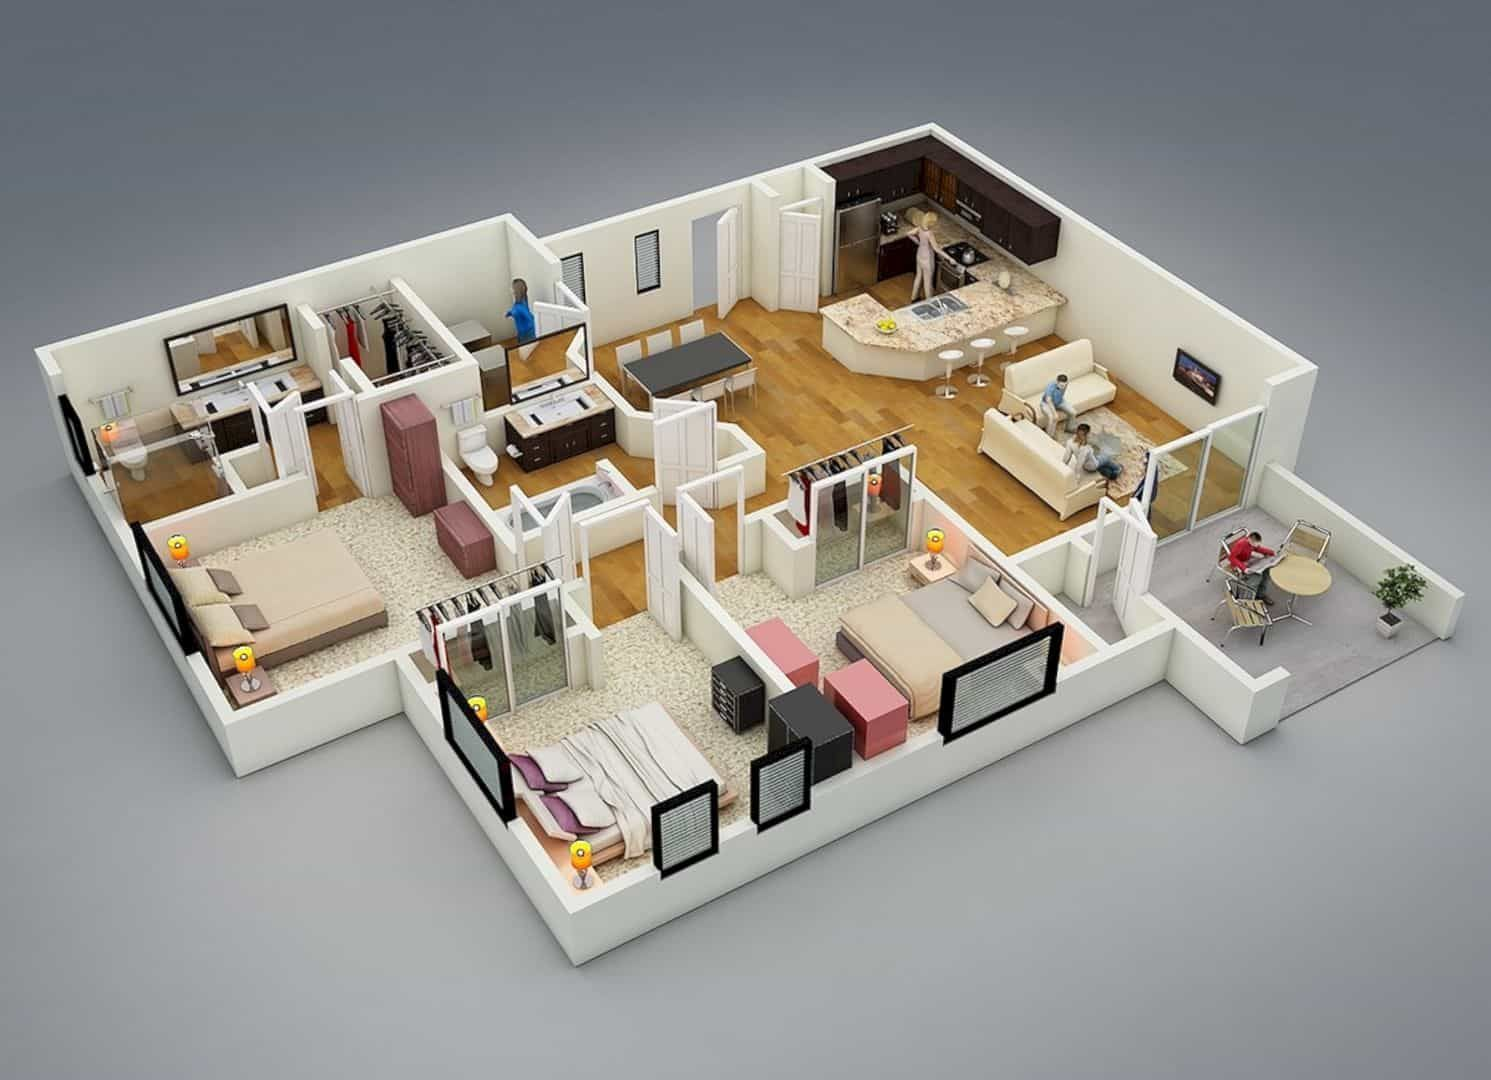 Why Do We Need 3d House Plan Before Starting The Project In 2020 Bungalow Floor Plans Modern Bungalow House Design Bungalow House Design